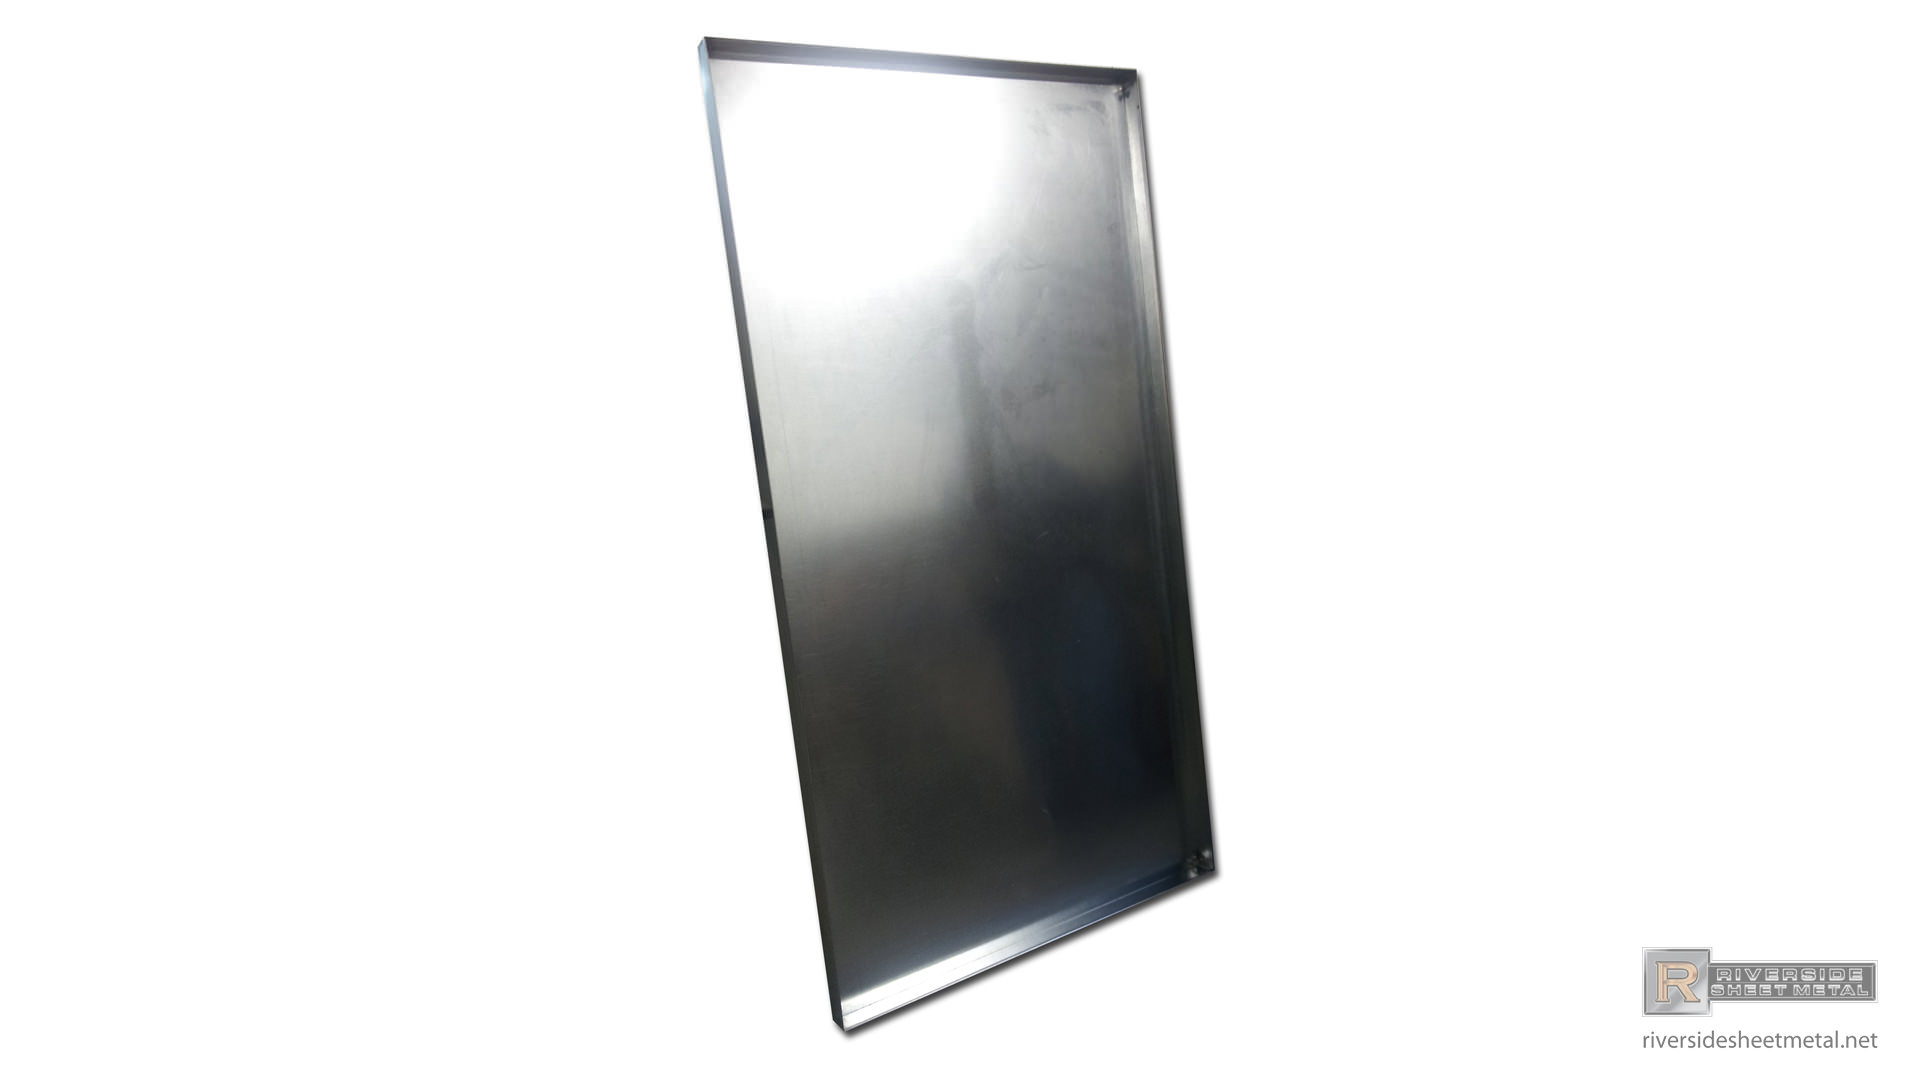 stainless steel washing machine pan